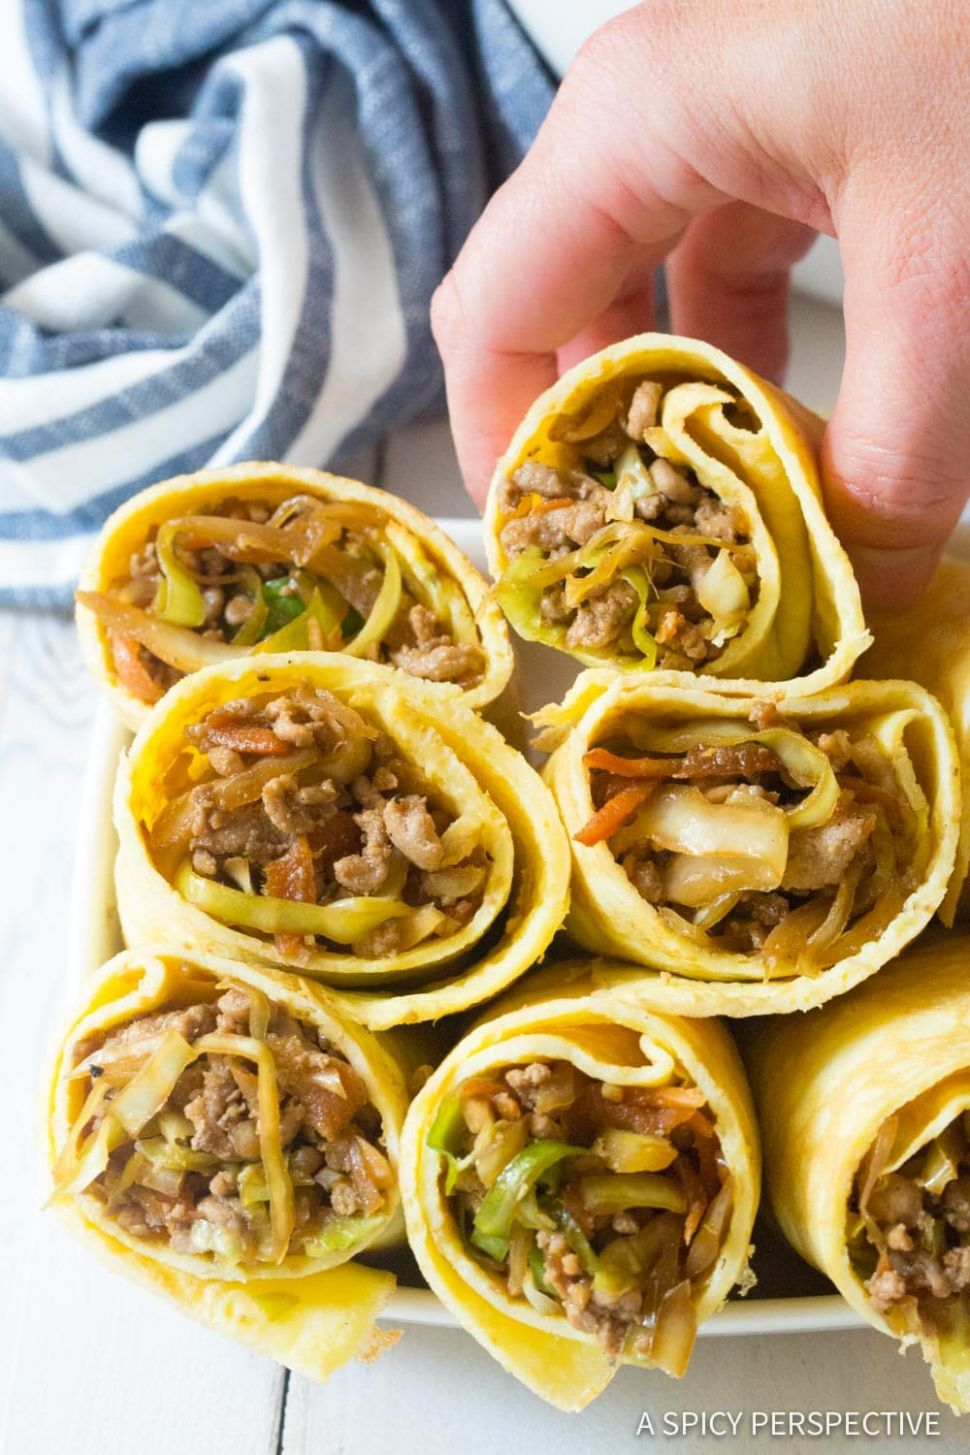 Keto Egg Roll Wrap Recipe (Video) - A Spicy Perspective - Recipes Using Egg Roll Wrappers